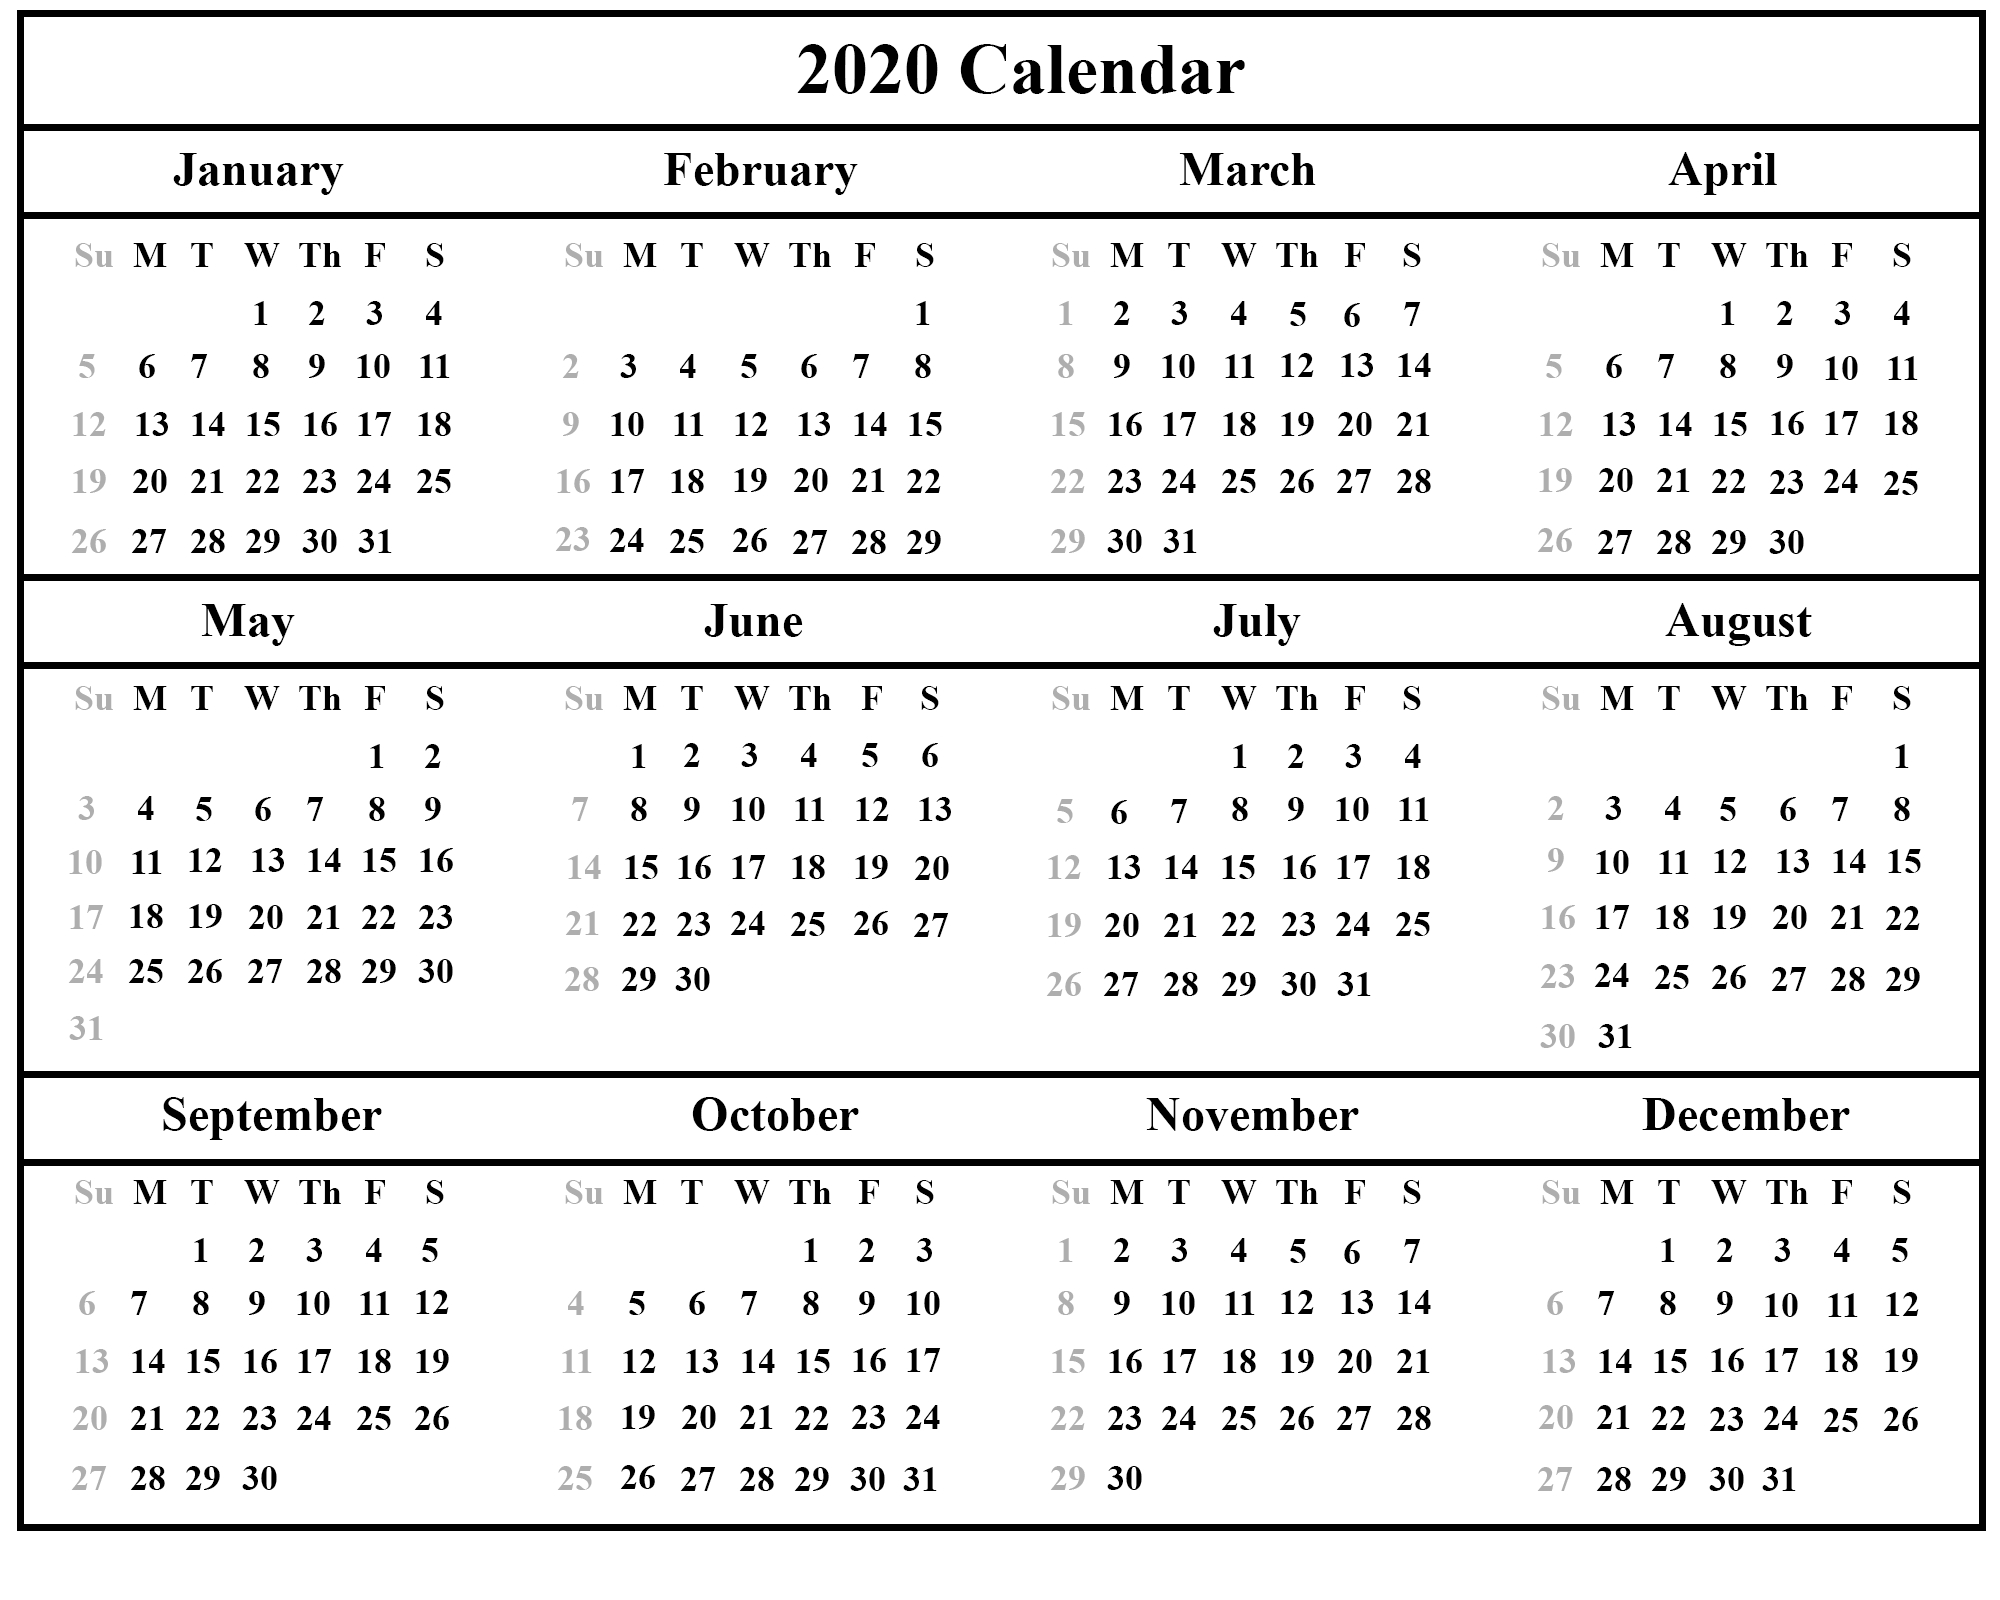 Printable Yearly Calendar 2020 Template With Holidays [Pdf, Word with regard to Free Printable 2020 Calendar With Space To Write